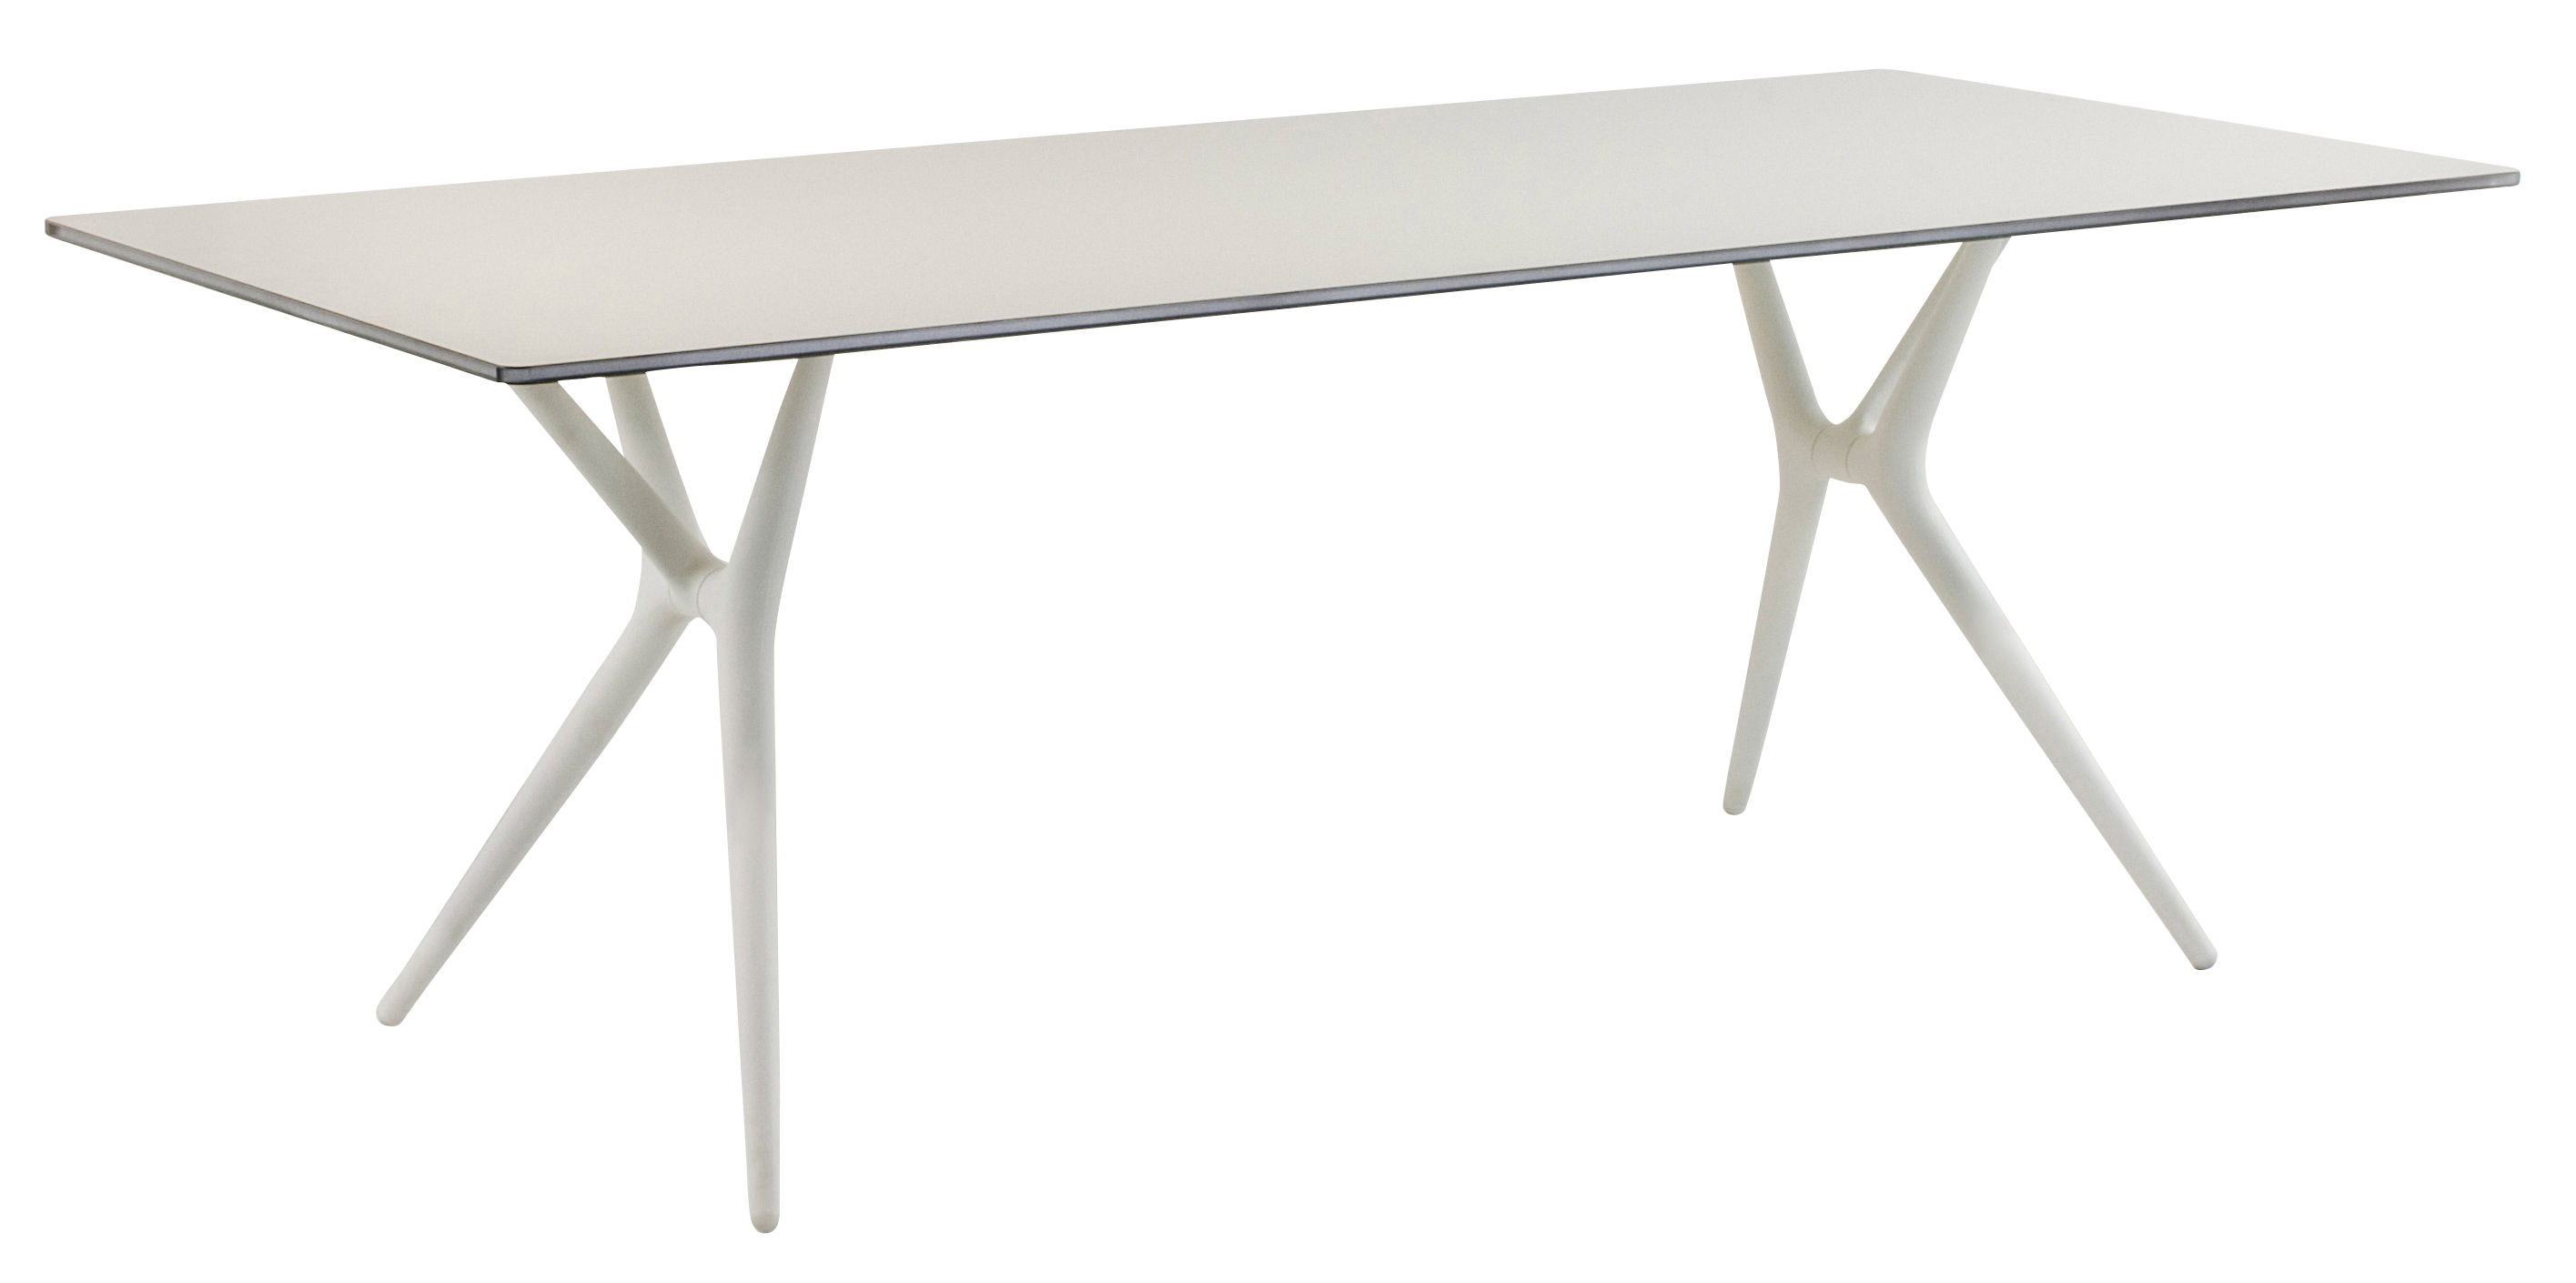 Spoon foldable table 140 x 70 cm white white feet by for Table 140 x 70